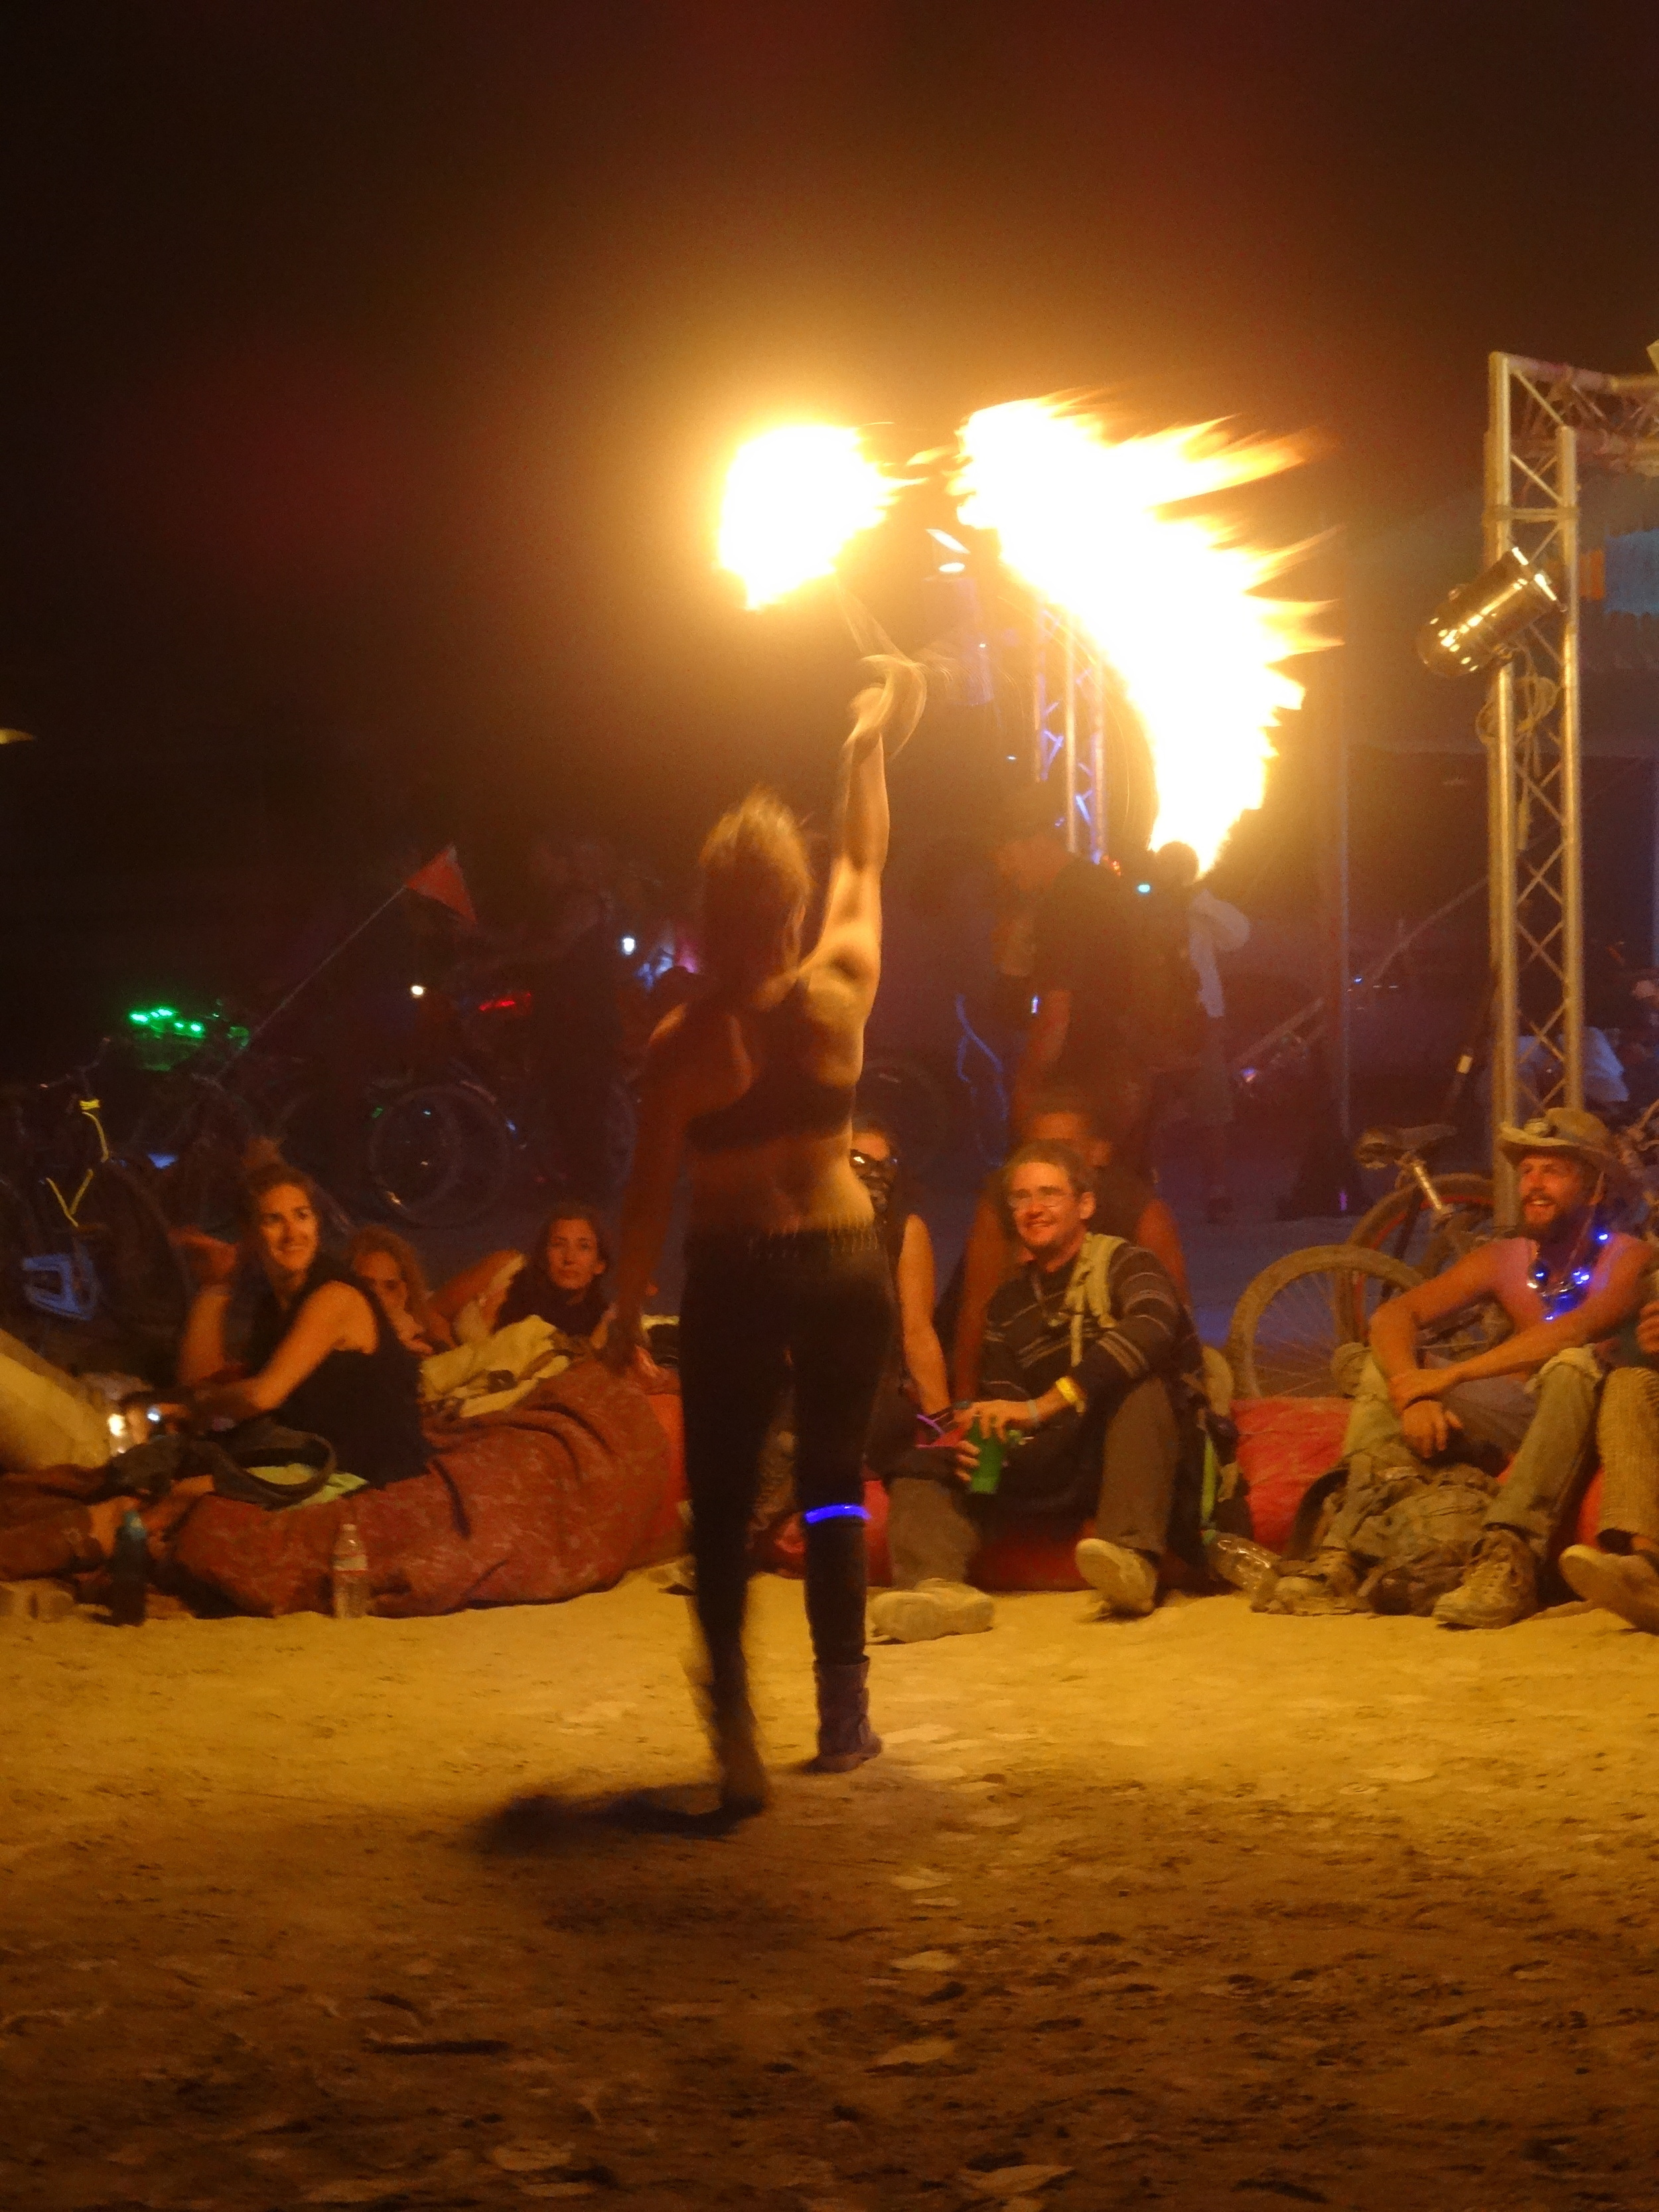 A firedancer entertains the crowd in the hour preceding the burning of the Man. There were over fifty such dancers performing choreographed moves incorporating flaming juggling balls among other tools.